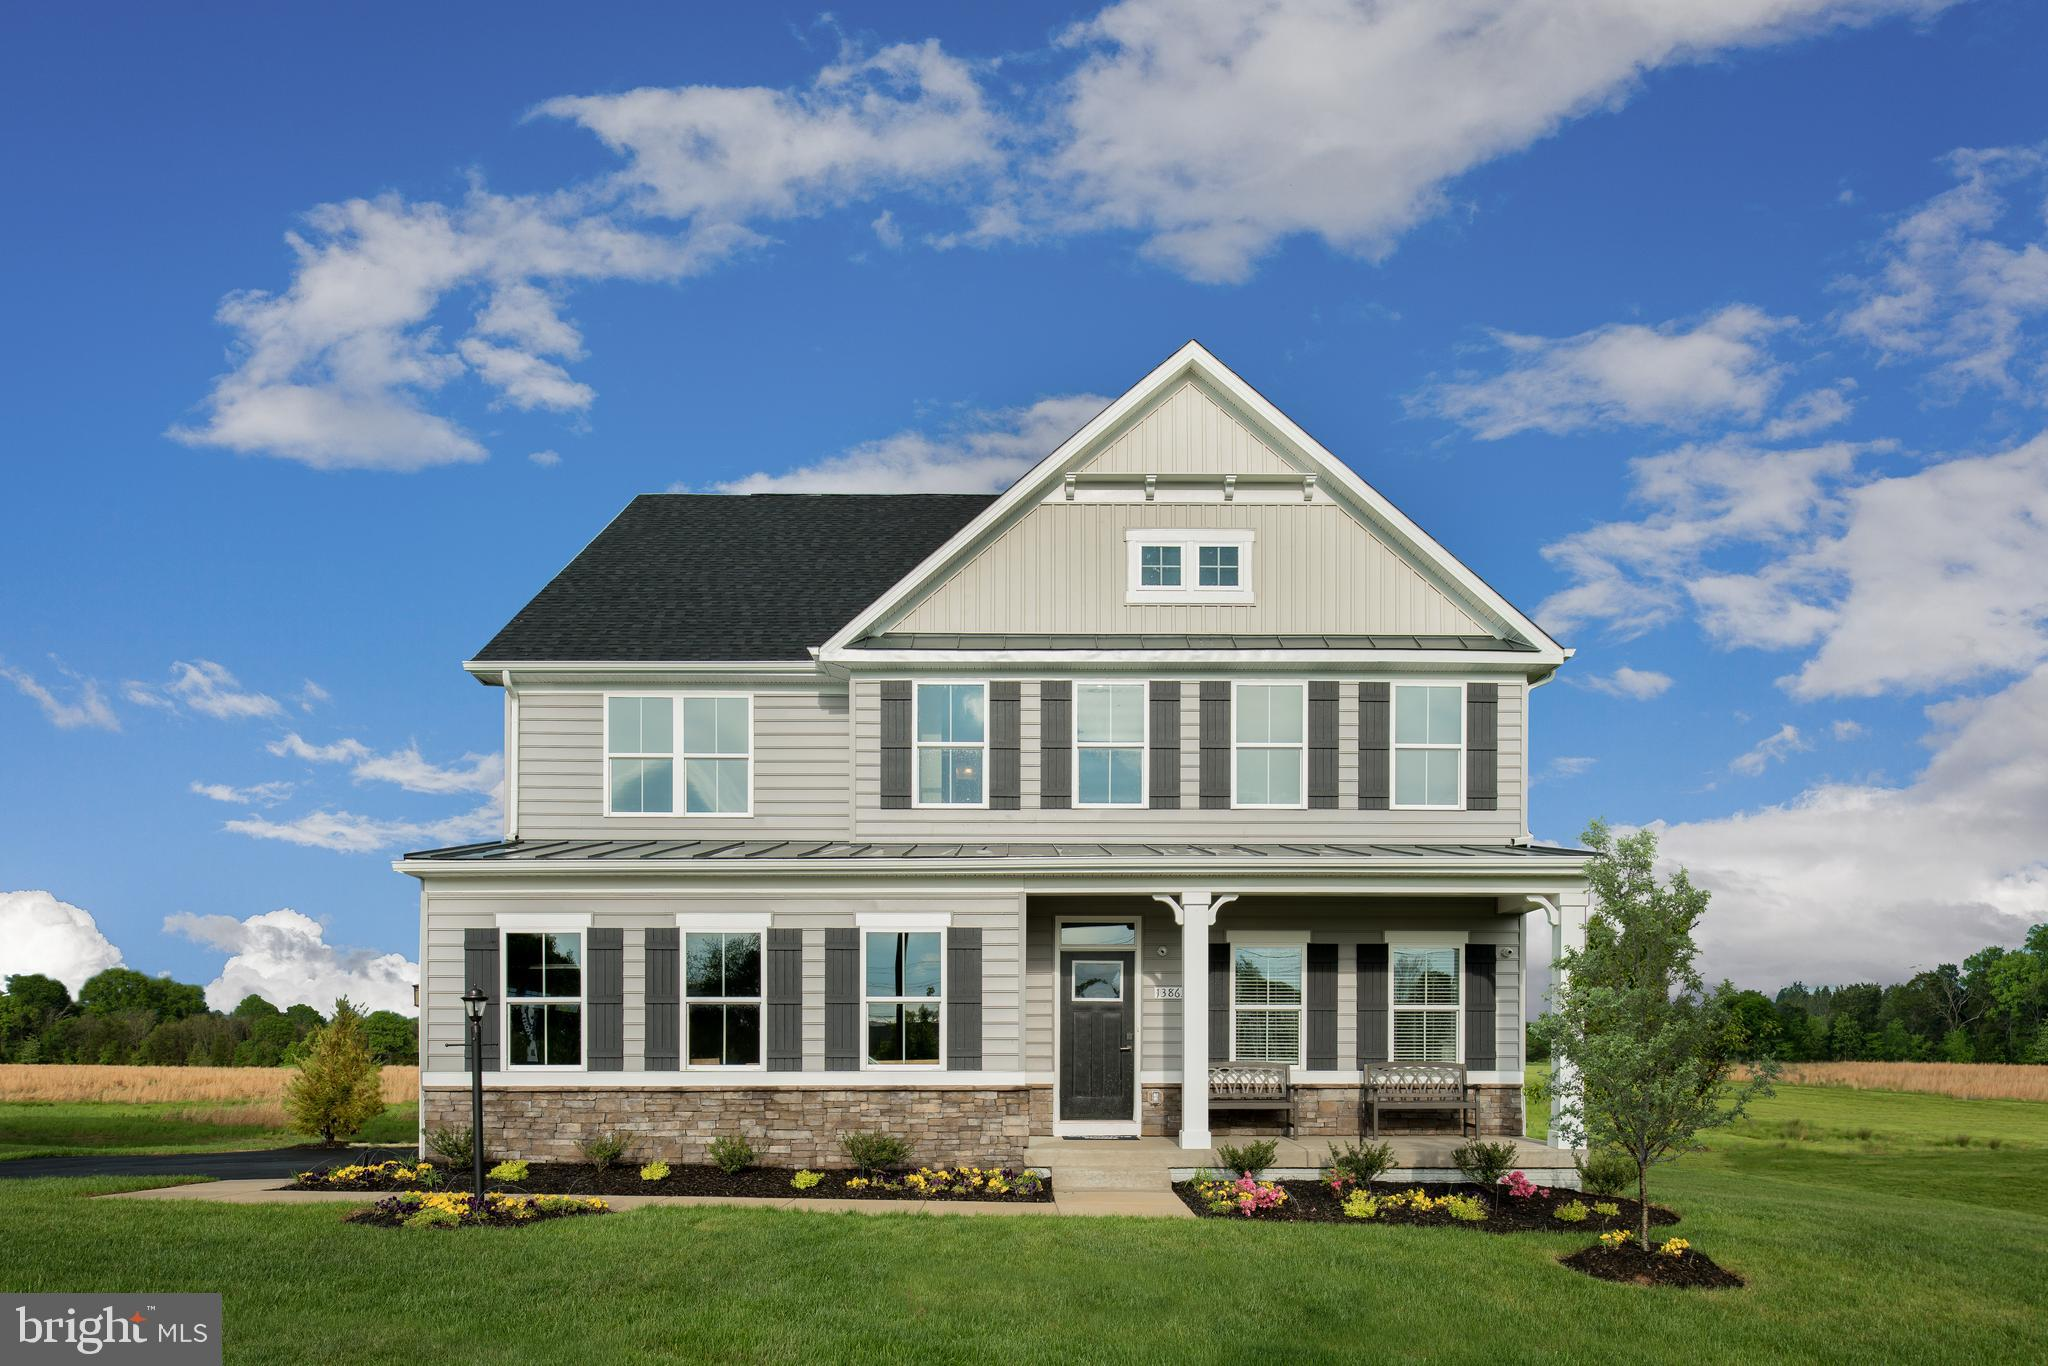 Beautiful Model Home for Sale! The York is an open floor plan w/ main level library, first floor bed